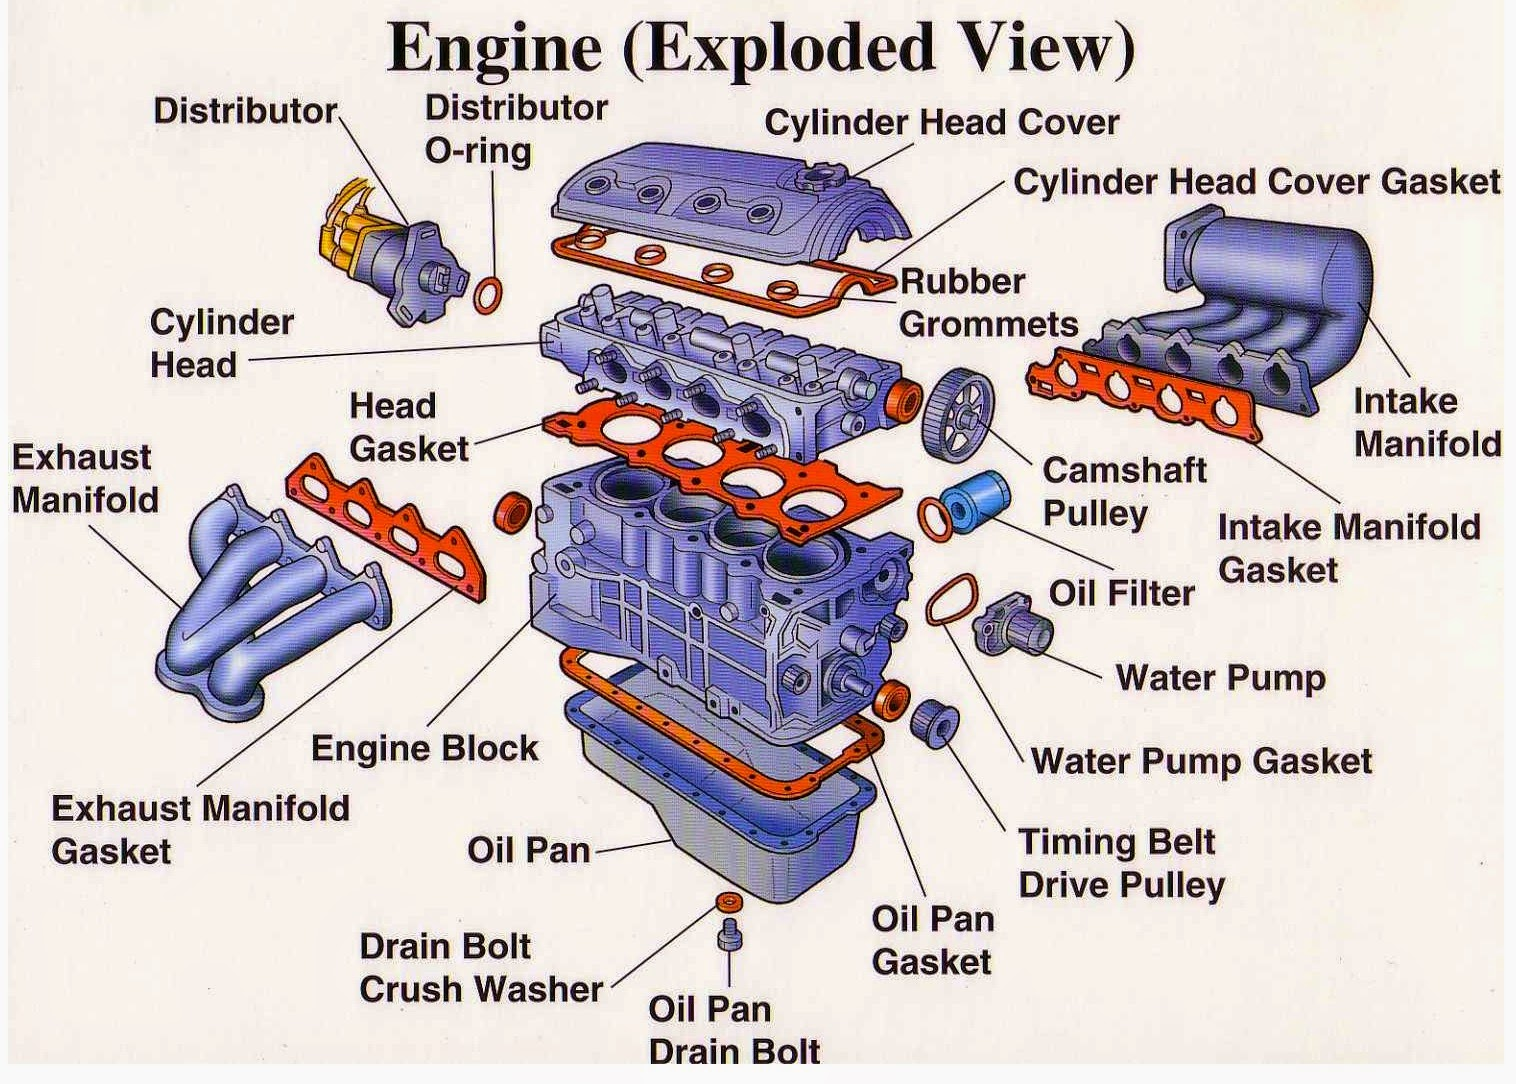 Basic Engine Diagram Manual Guide Wiring Motorcycle Parts Library Rh 73 Codingcommunity De Car Diesel